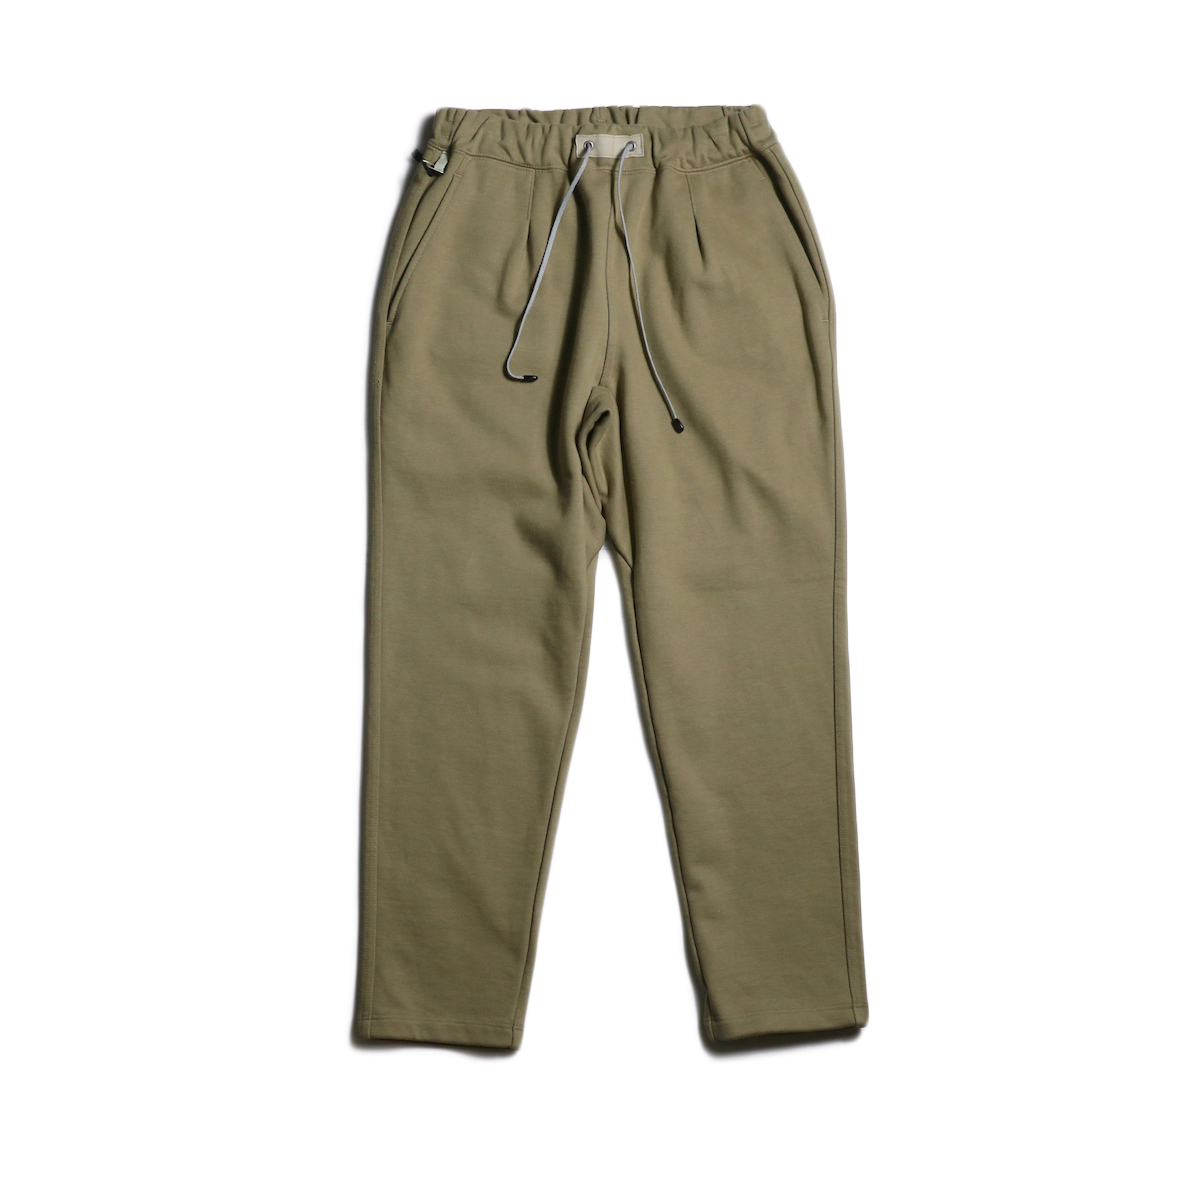 CURLY / BROMLEY EZ TROUSERS (Beige)